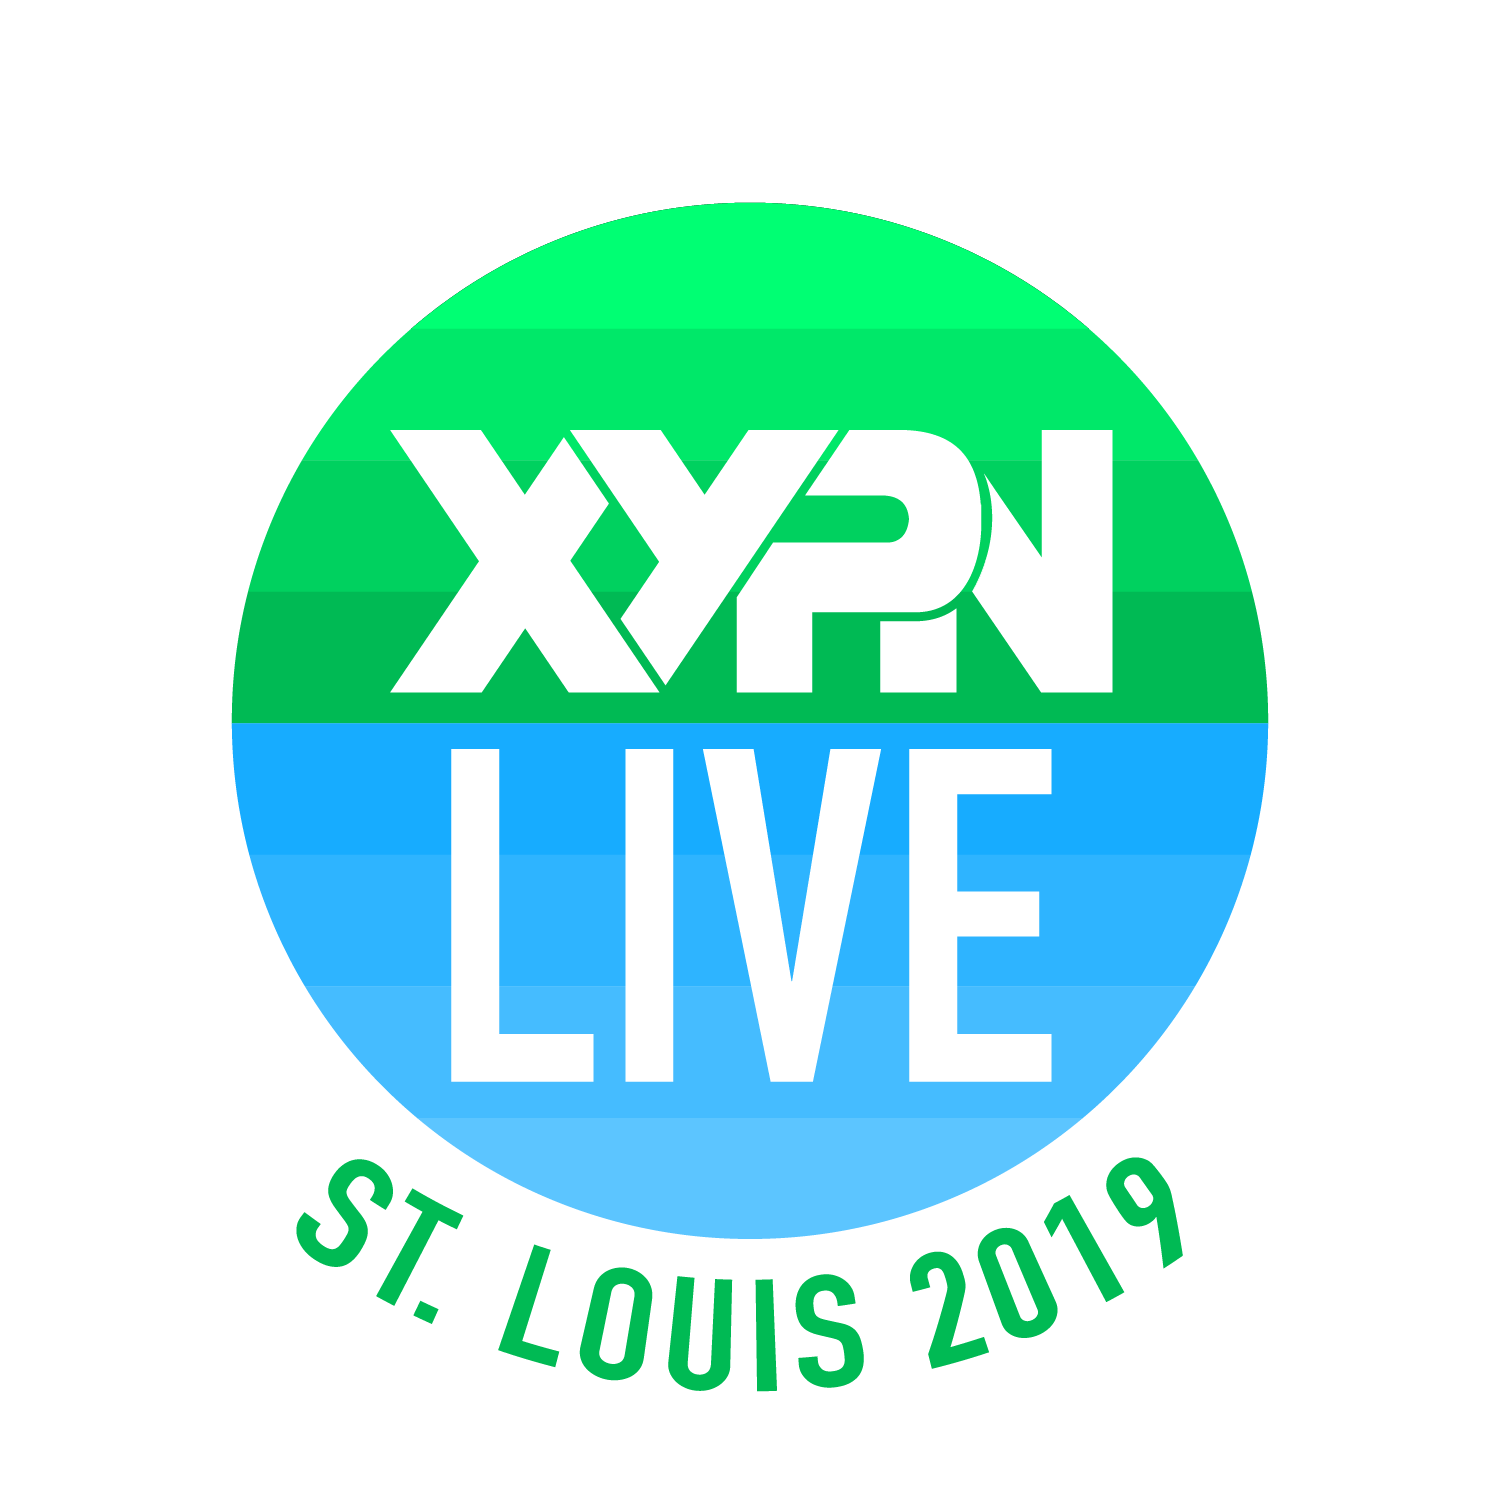 xypn_LIVE_19_color-01.png